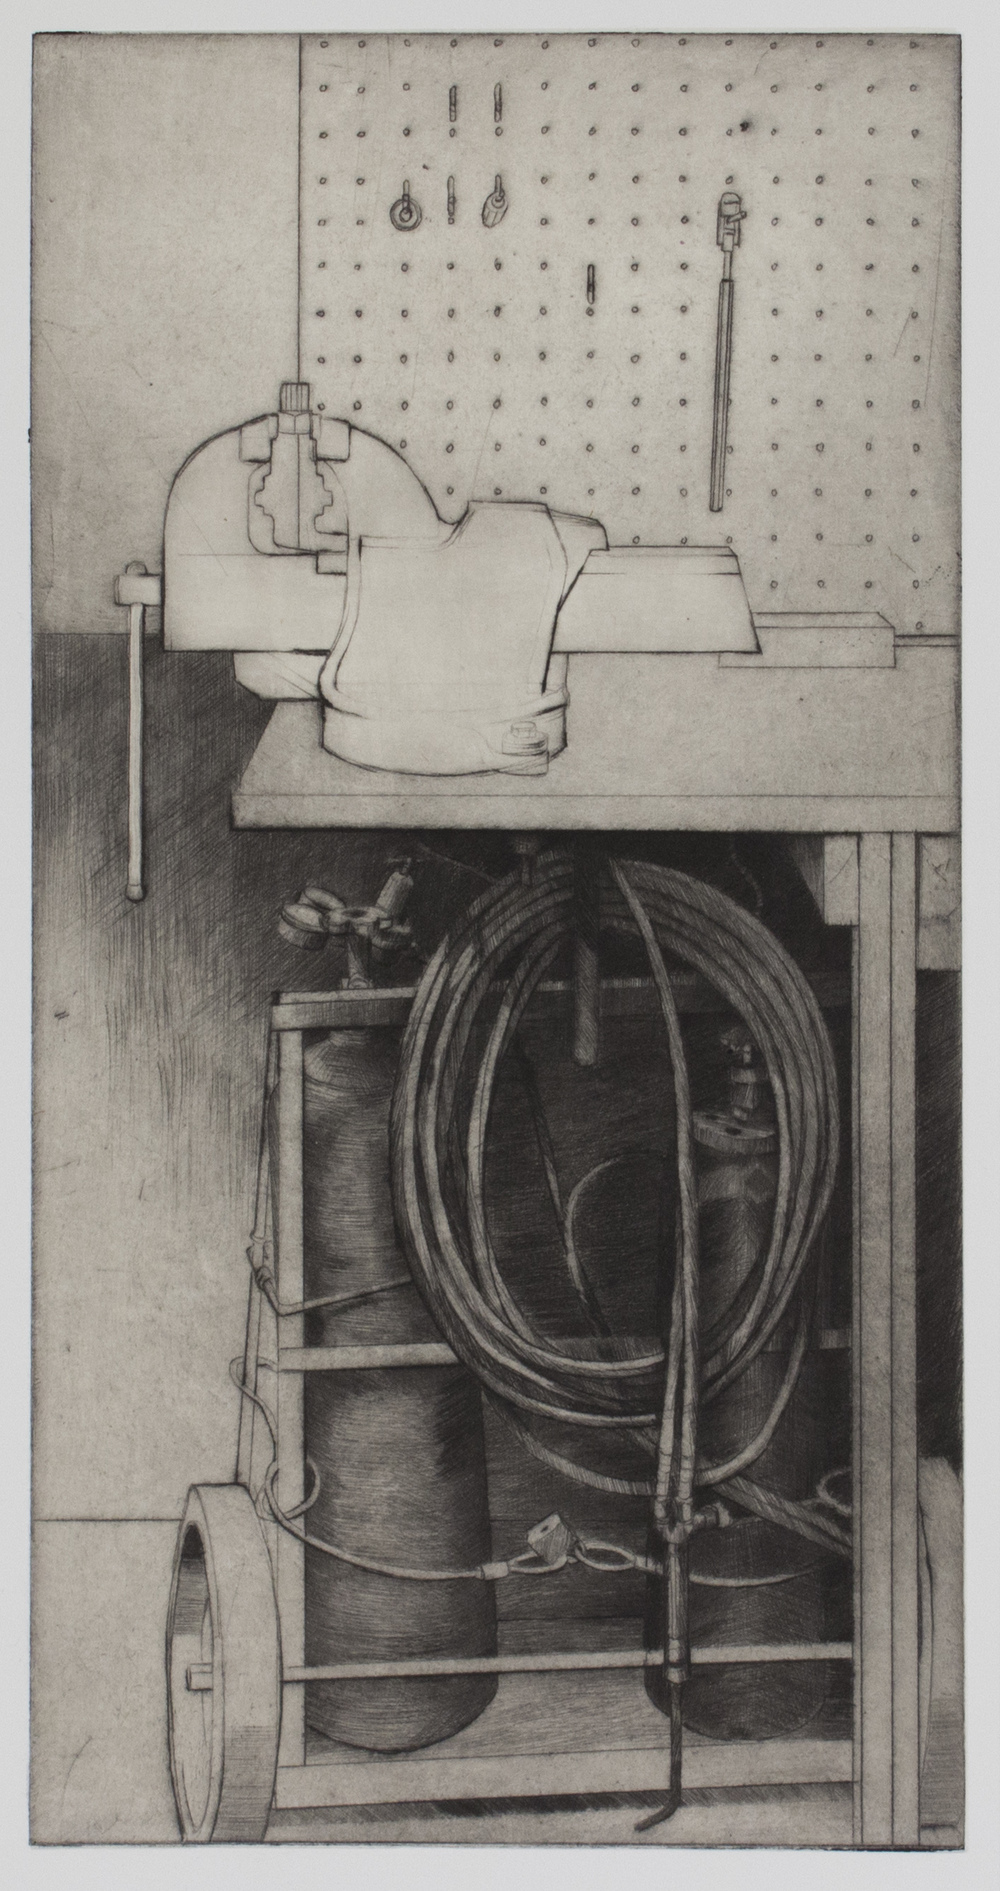 "Upstairs at the Bike Shop - 15.5"" x 7.75"" - Drypoint with Chine Colle - 2016"